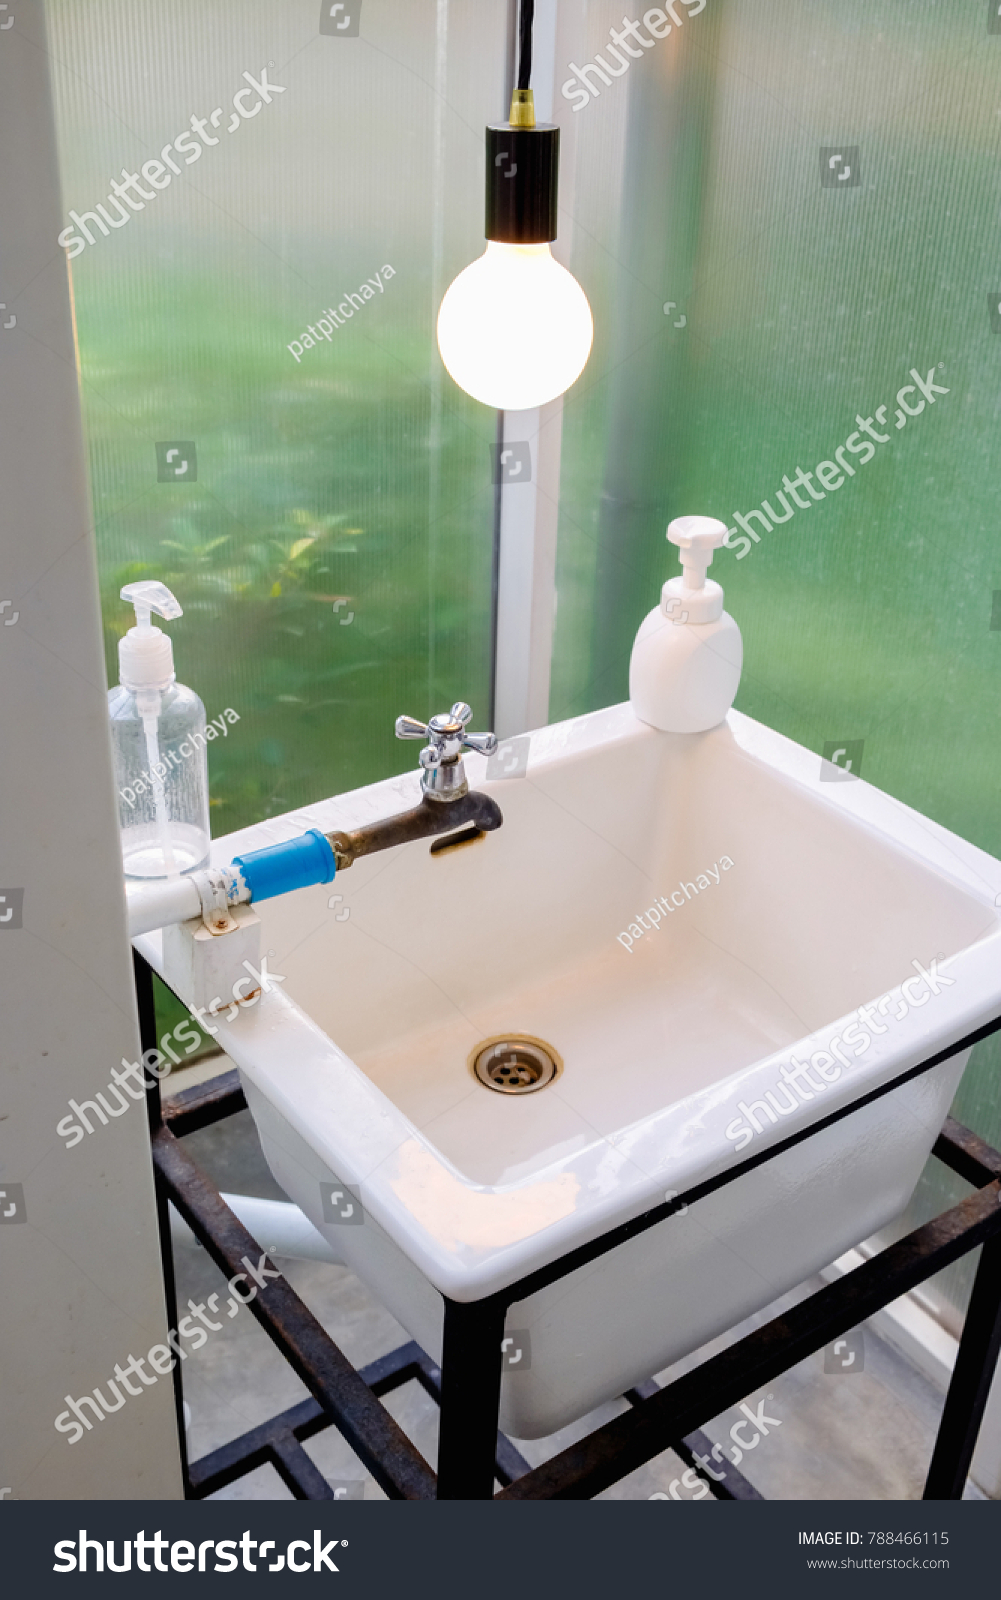 Hand Washing White Basin Bathroom Used Stock Photo (Safe to Use ...